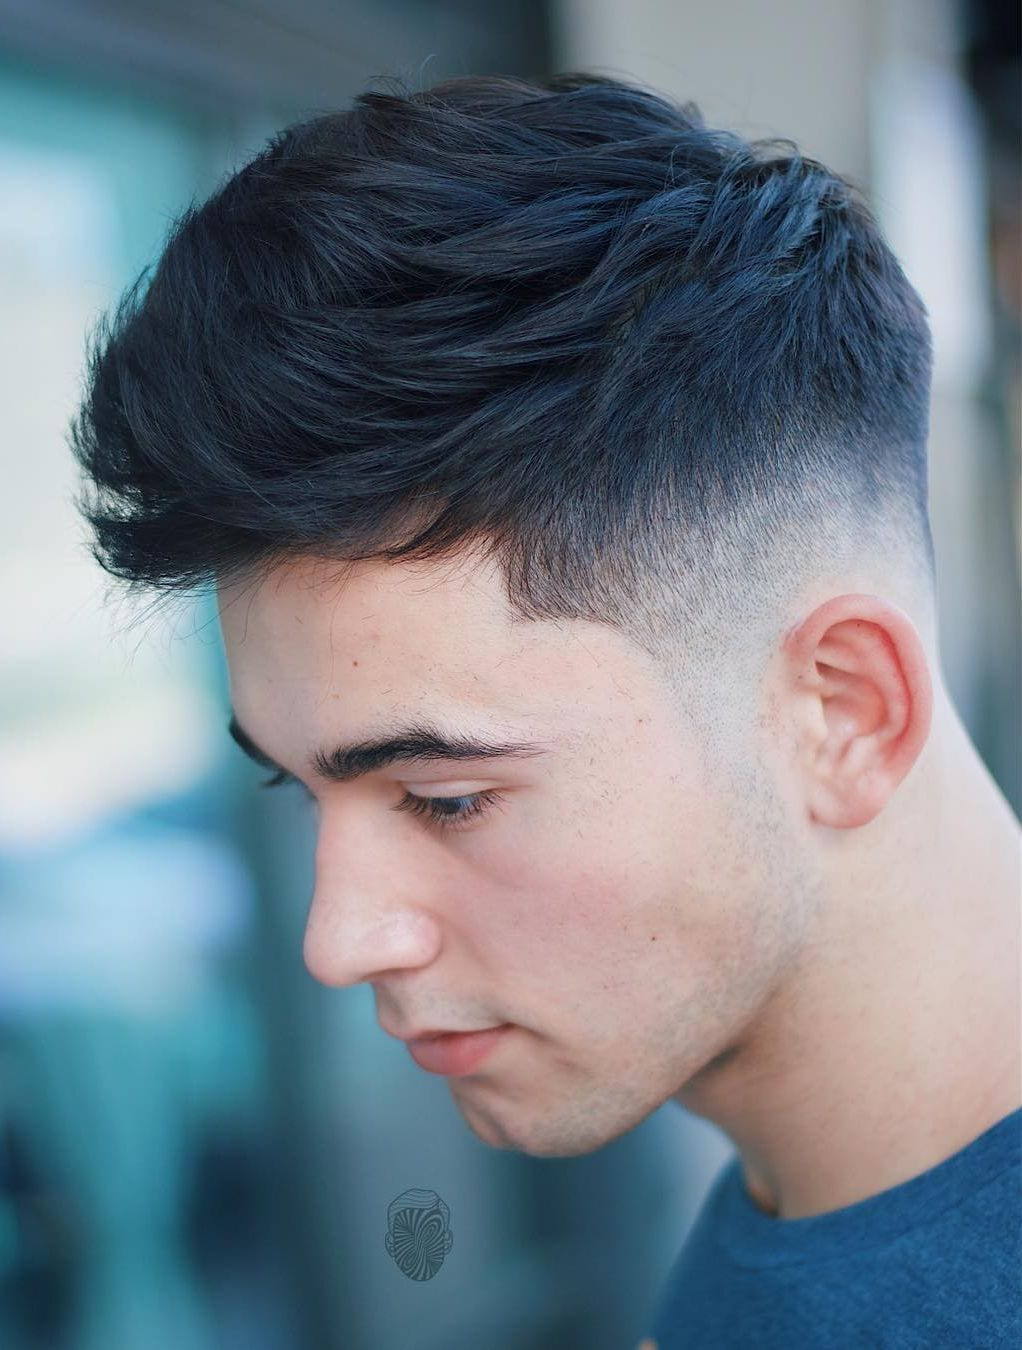 Best ideas about Teenage Hairstyles Boys . Save or Pin 50 Best Hairstyles for Teenage Boys The Ultimate Guide 2019 Now.